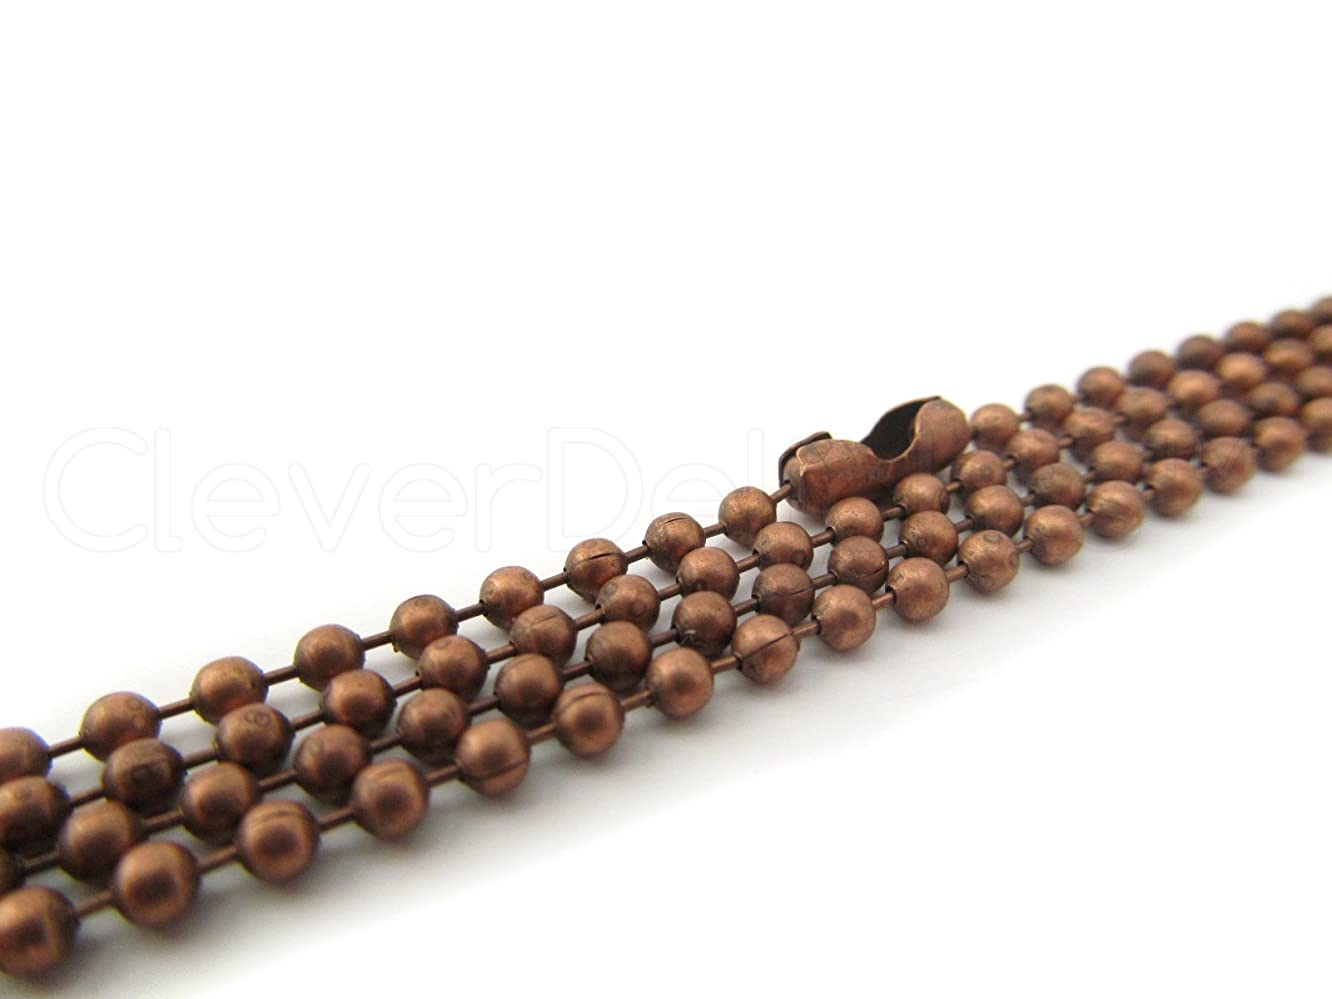 CleverDelights 10 Ball Chain Necklaces - Antique Copper Color - 24 Inch - Jewelry Findings - 2.4mm Ball - Adjustable Antiqued Necklaces - 24